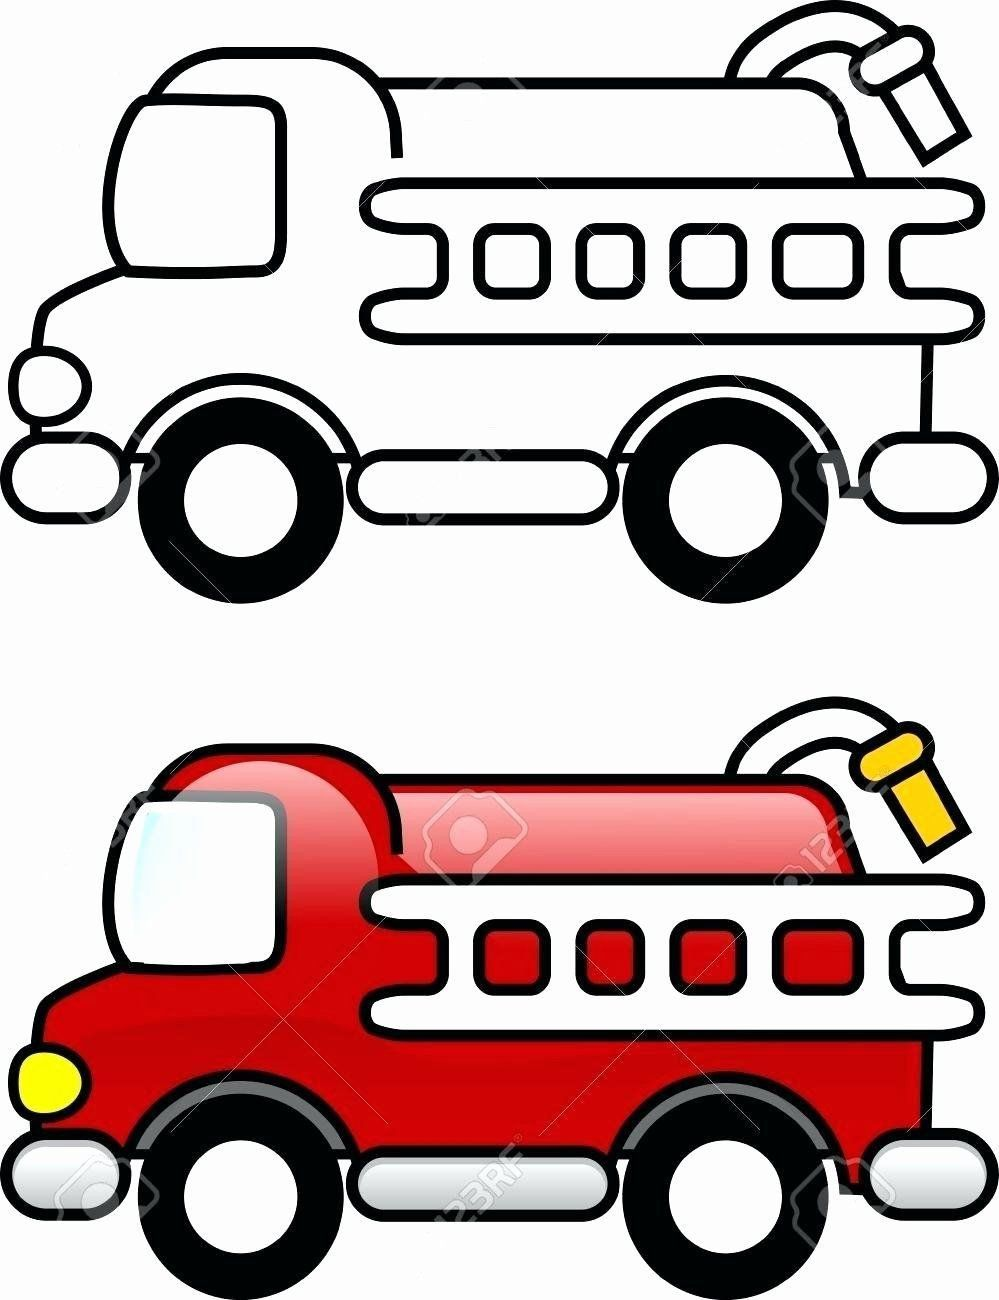 Fire Truck Coloring Pages Printable Fire Truck Coloring Page Dengan Gambar In 2020 Truck Coloring Pages Coloring Pages For Kids Fire Truck Drawing